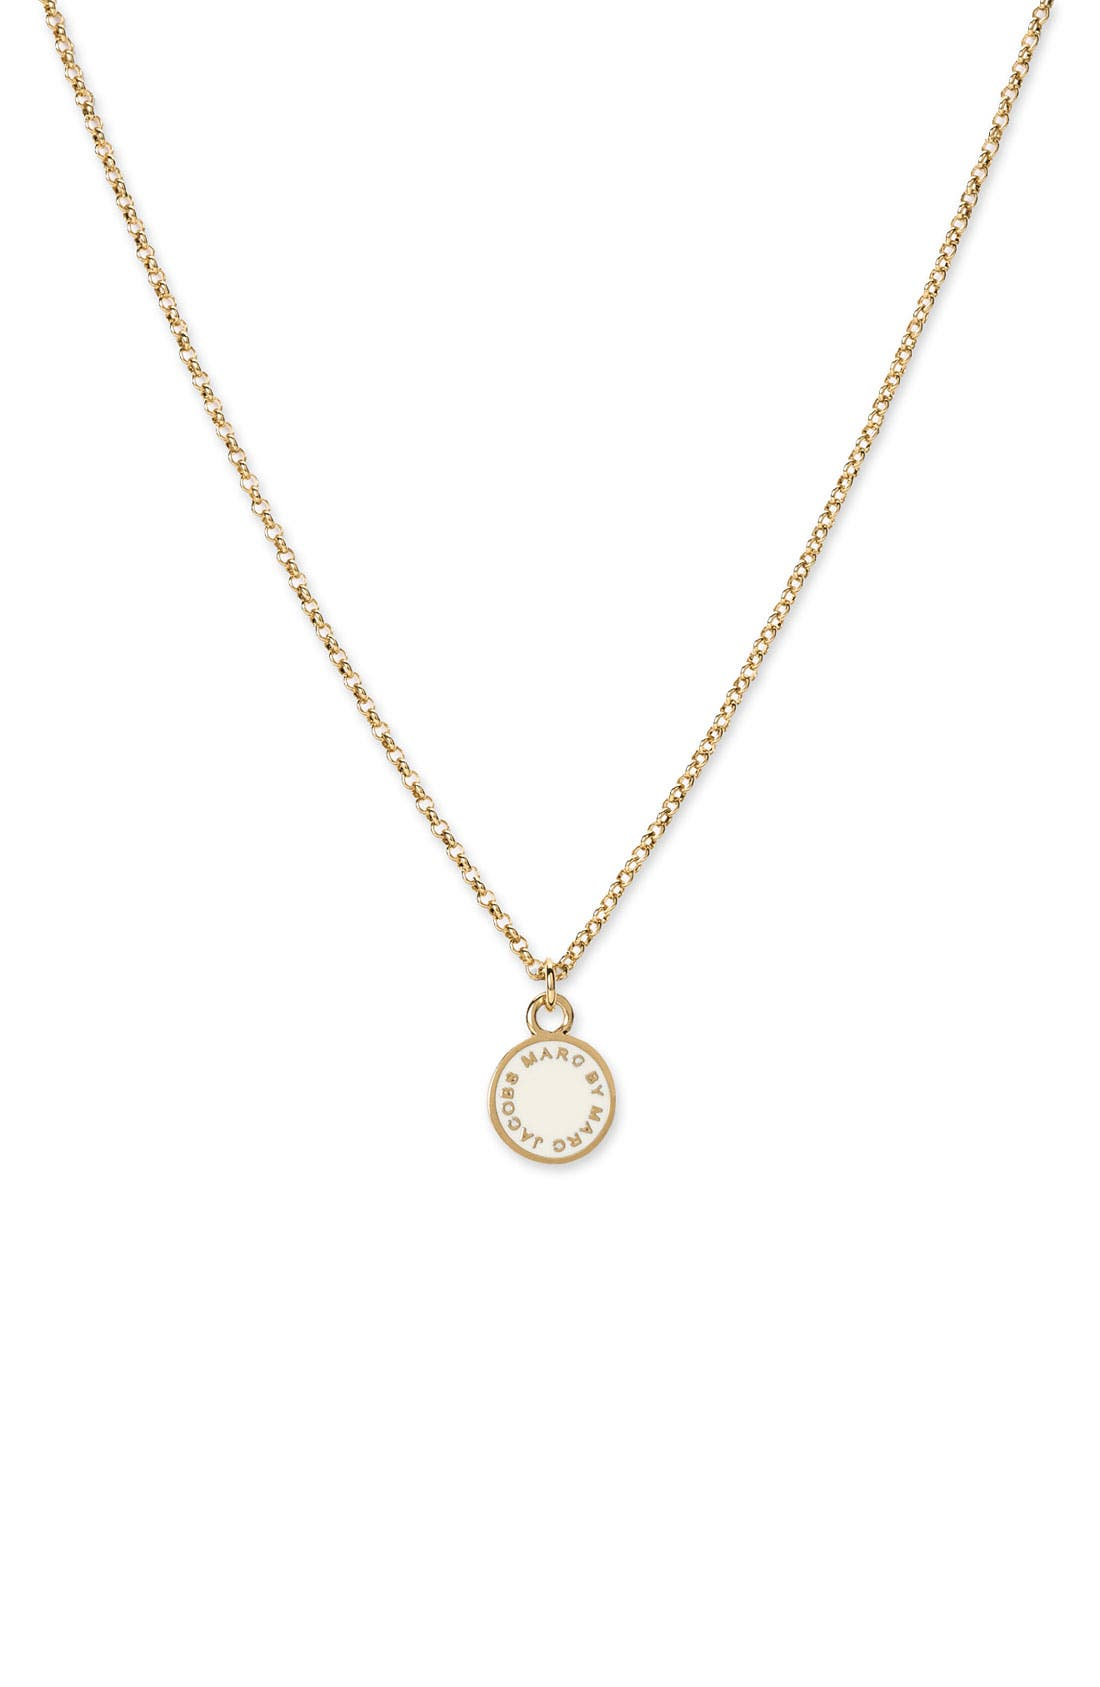 Alternate Image 1 Selected - MARC BY MARC JACOBS Small Disc Pendant Necklace